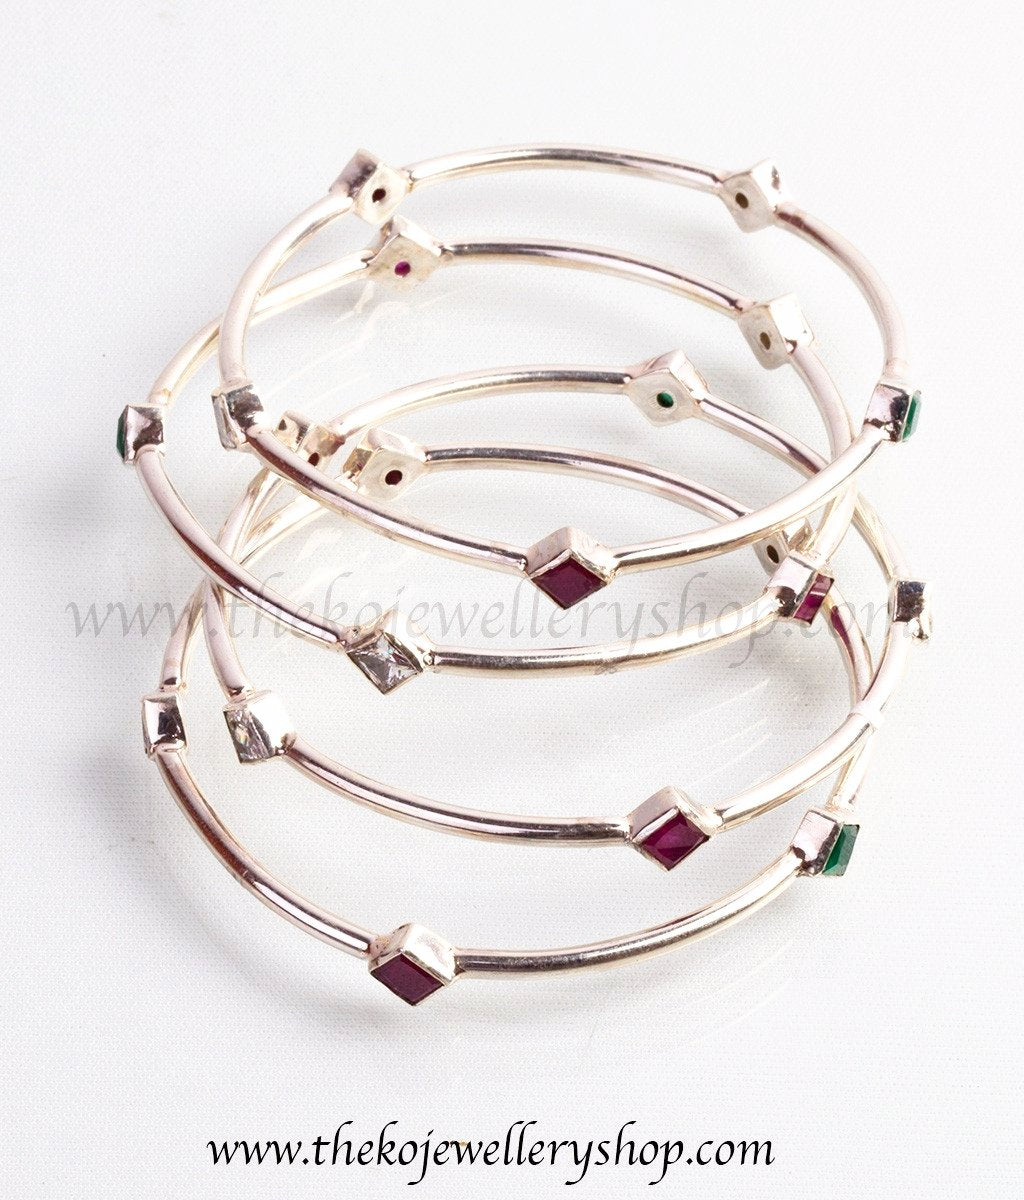 jewellery bracelets design girls silk for gift fashion bracelet personality sterling charms style bangles silver thread cat latest bangle product charm children